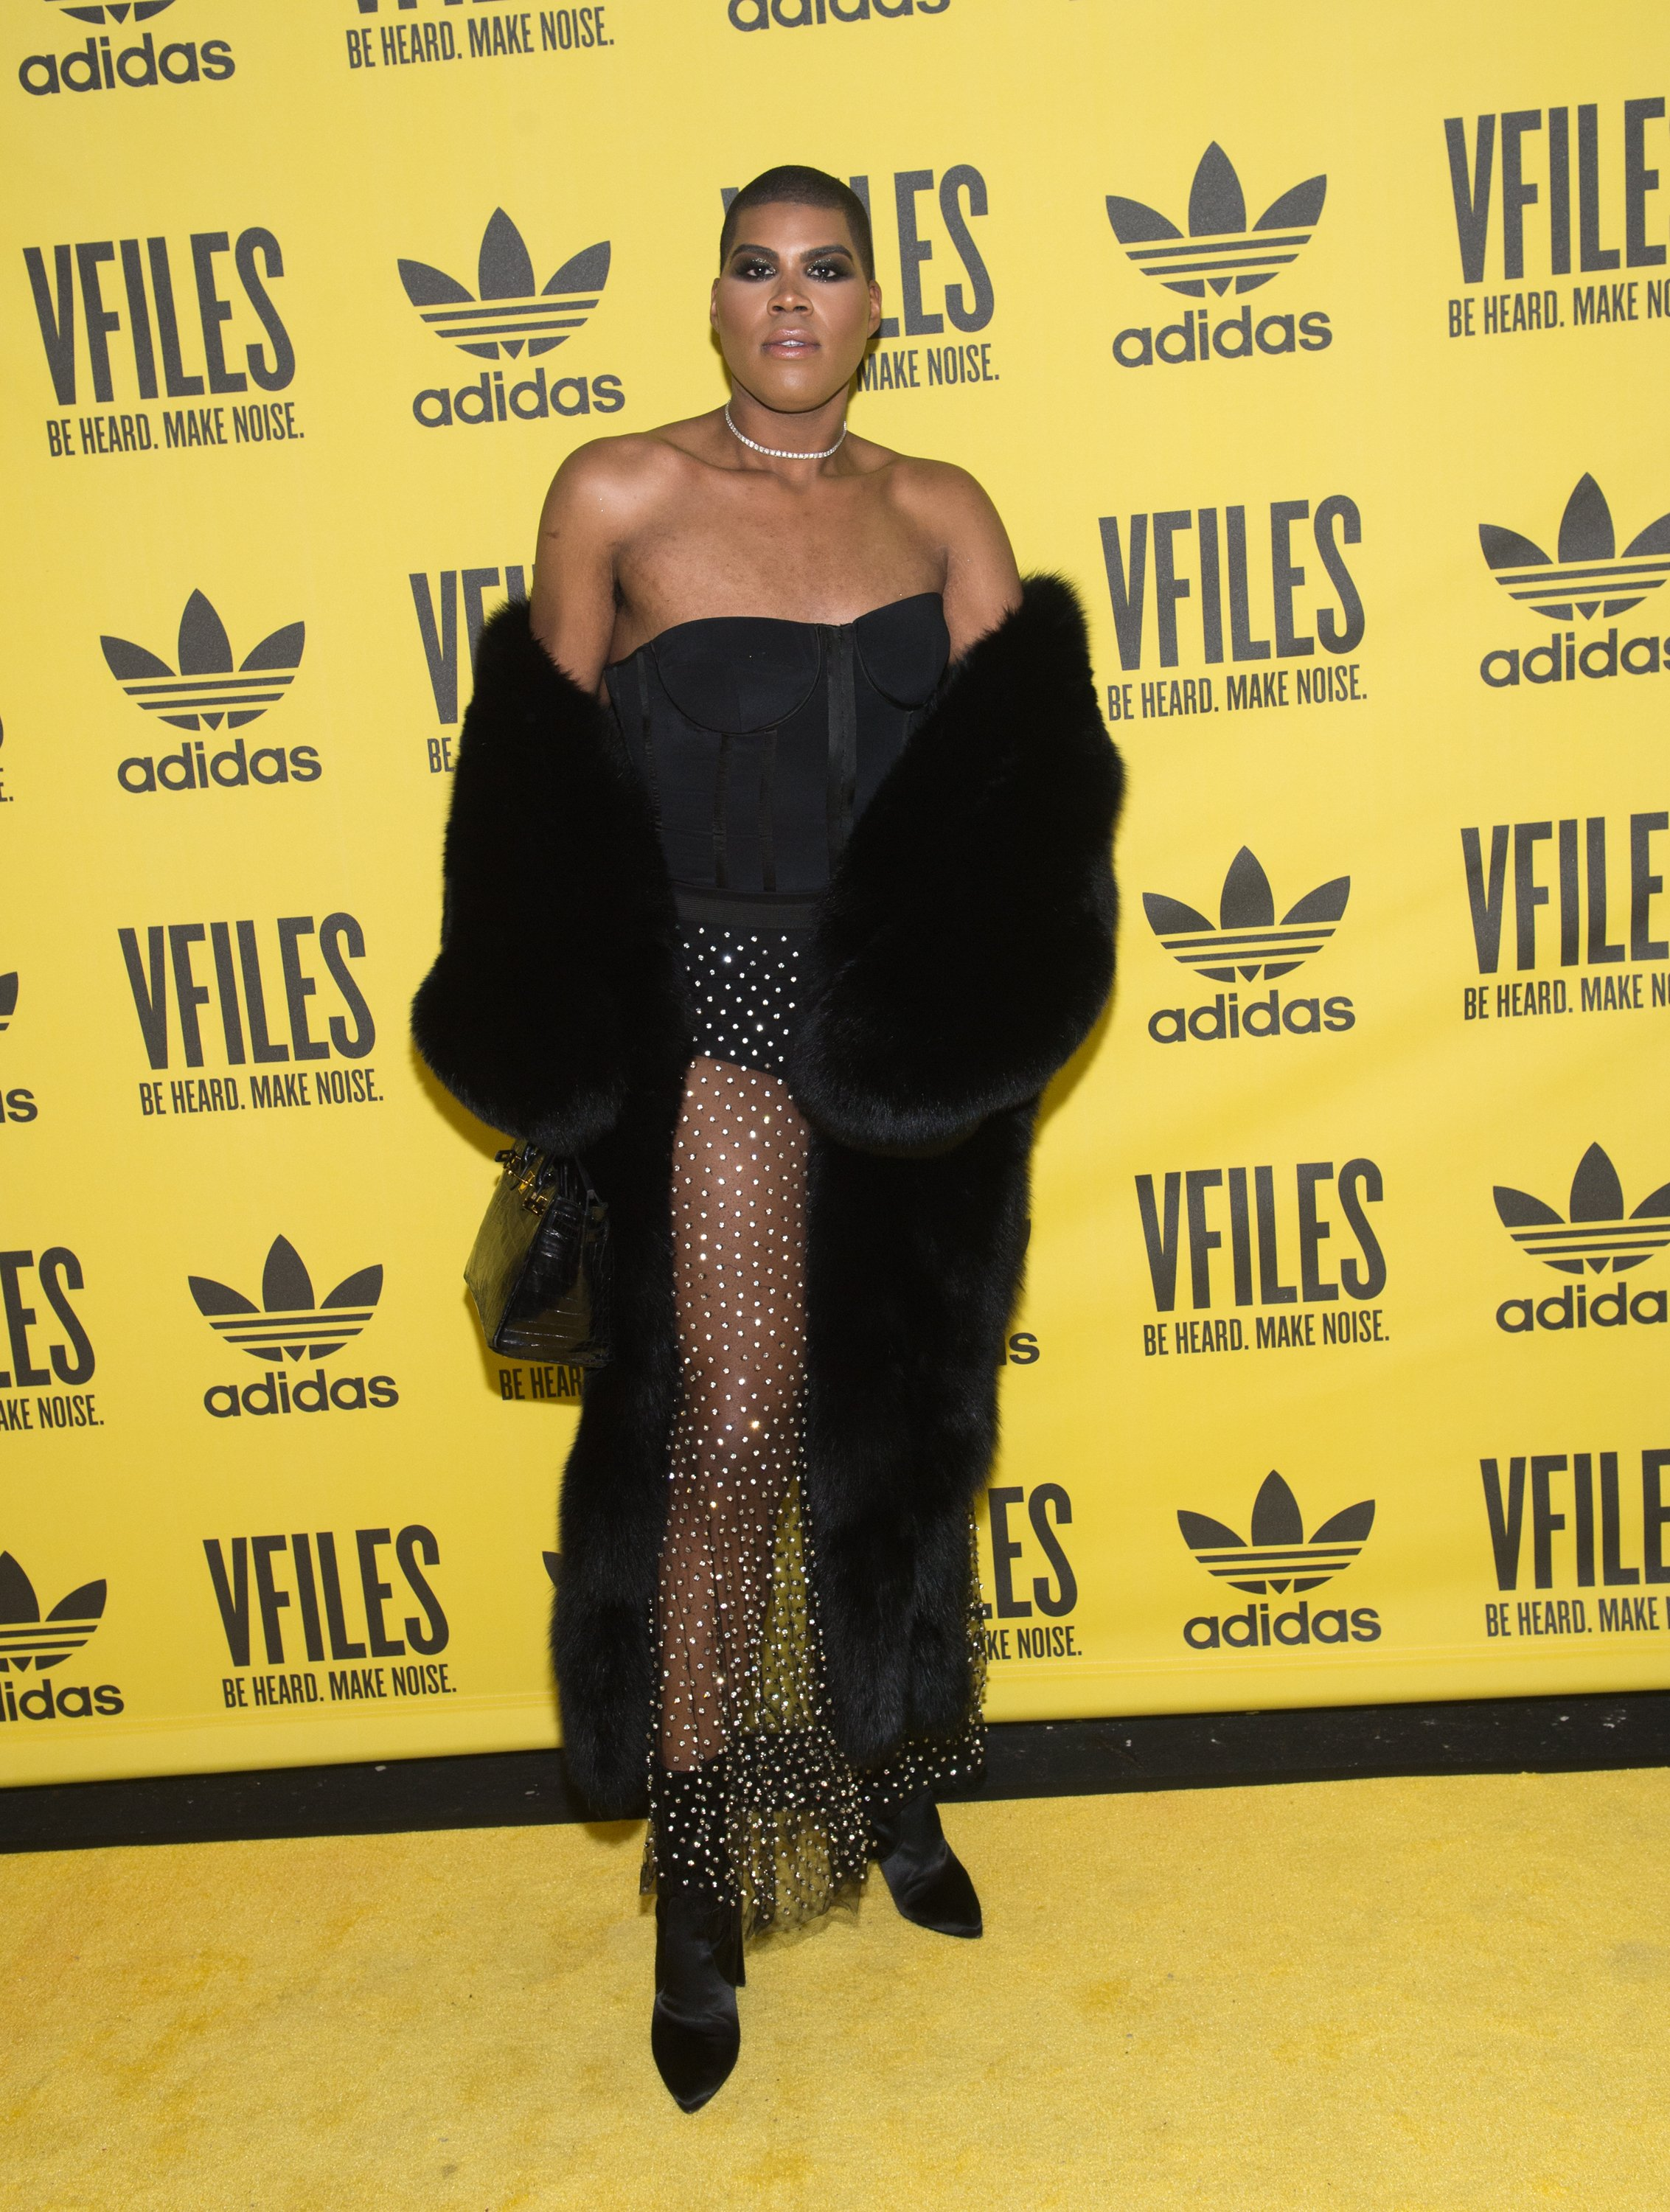 EJ Johnson during New York Fashion Week at on February 12, 2018 in New York City | Photo: Getty Images